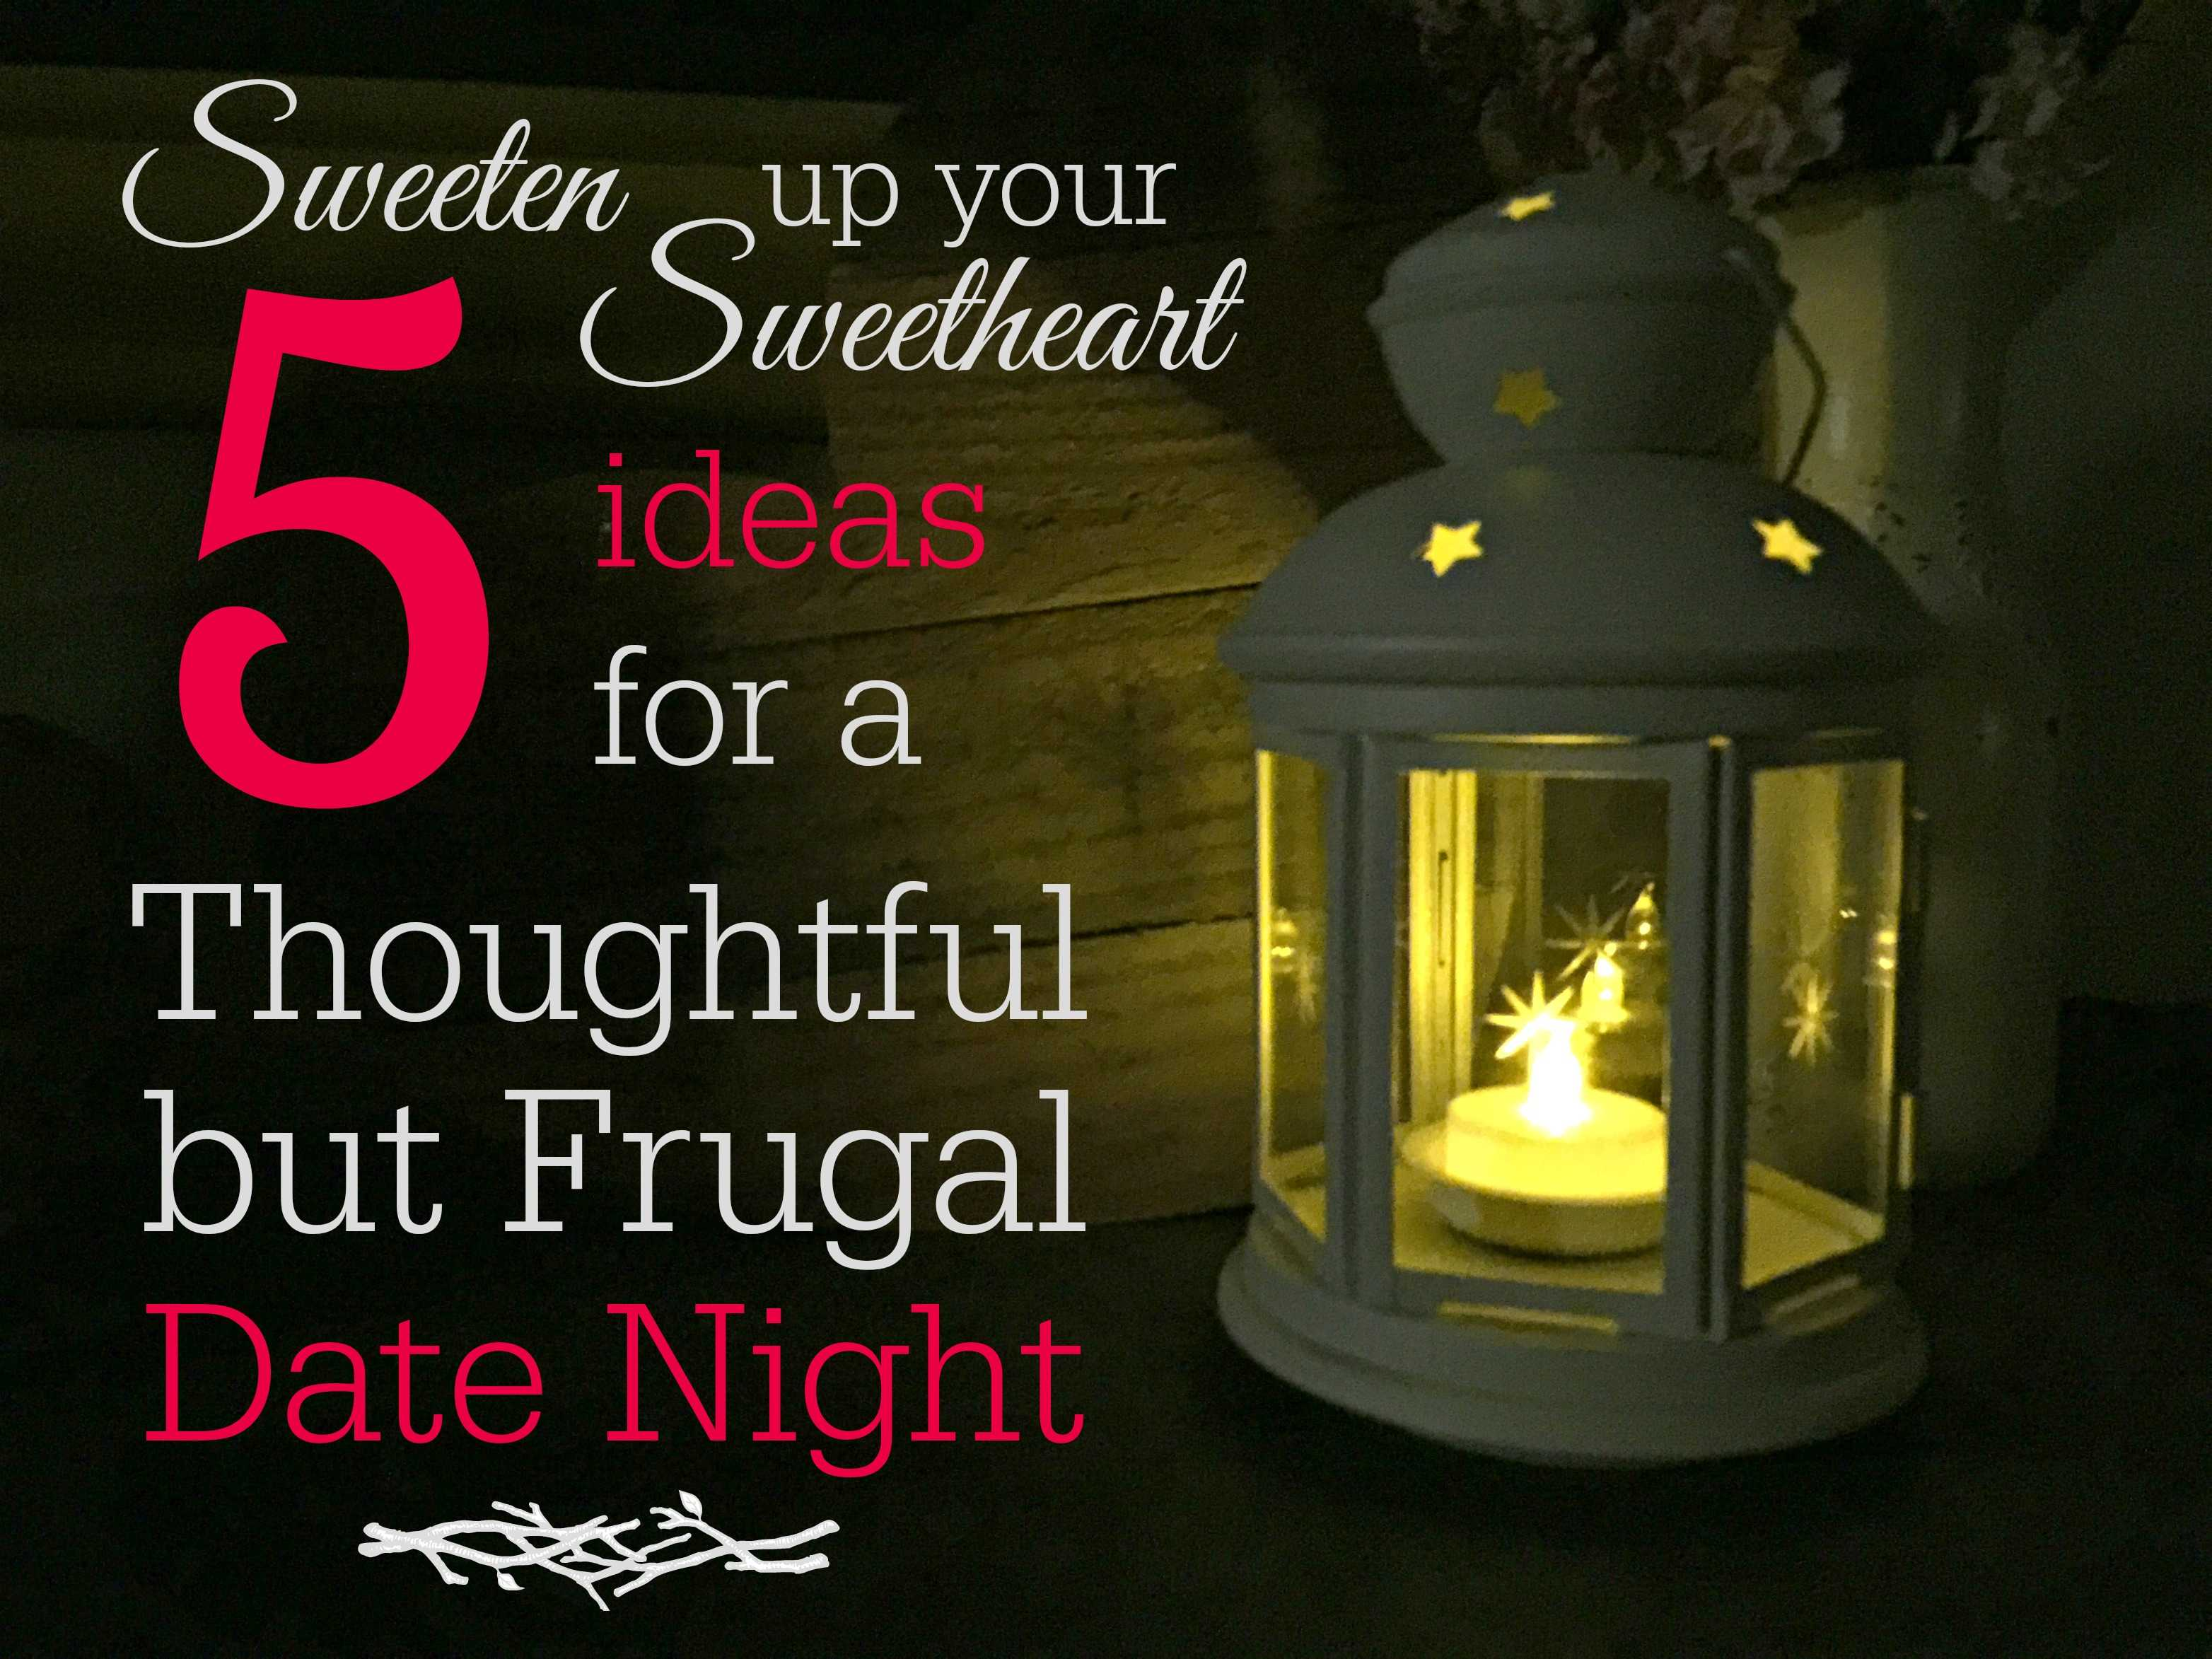 5 ideas for a thoughtful but frugal date night pennies into pearls